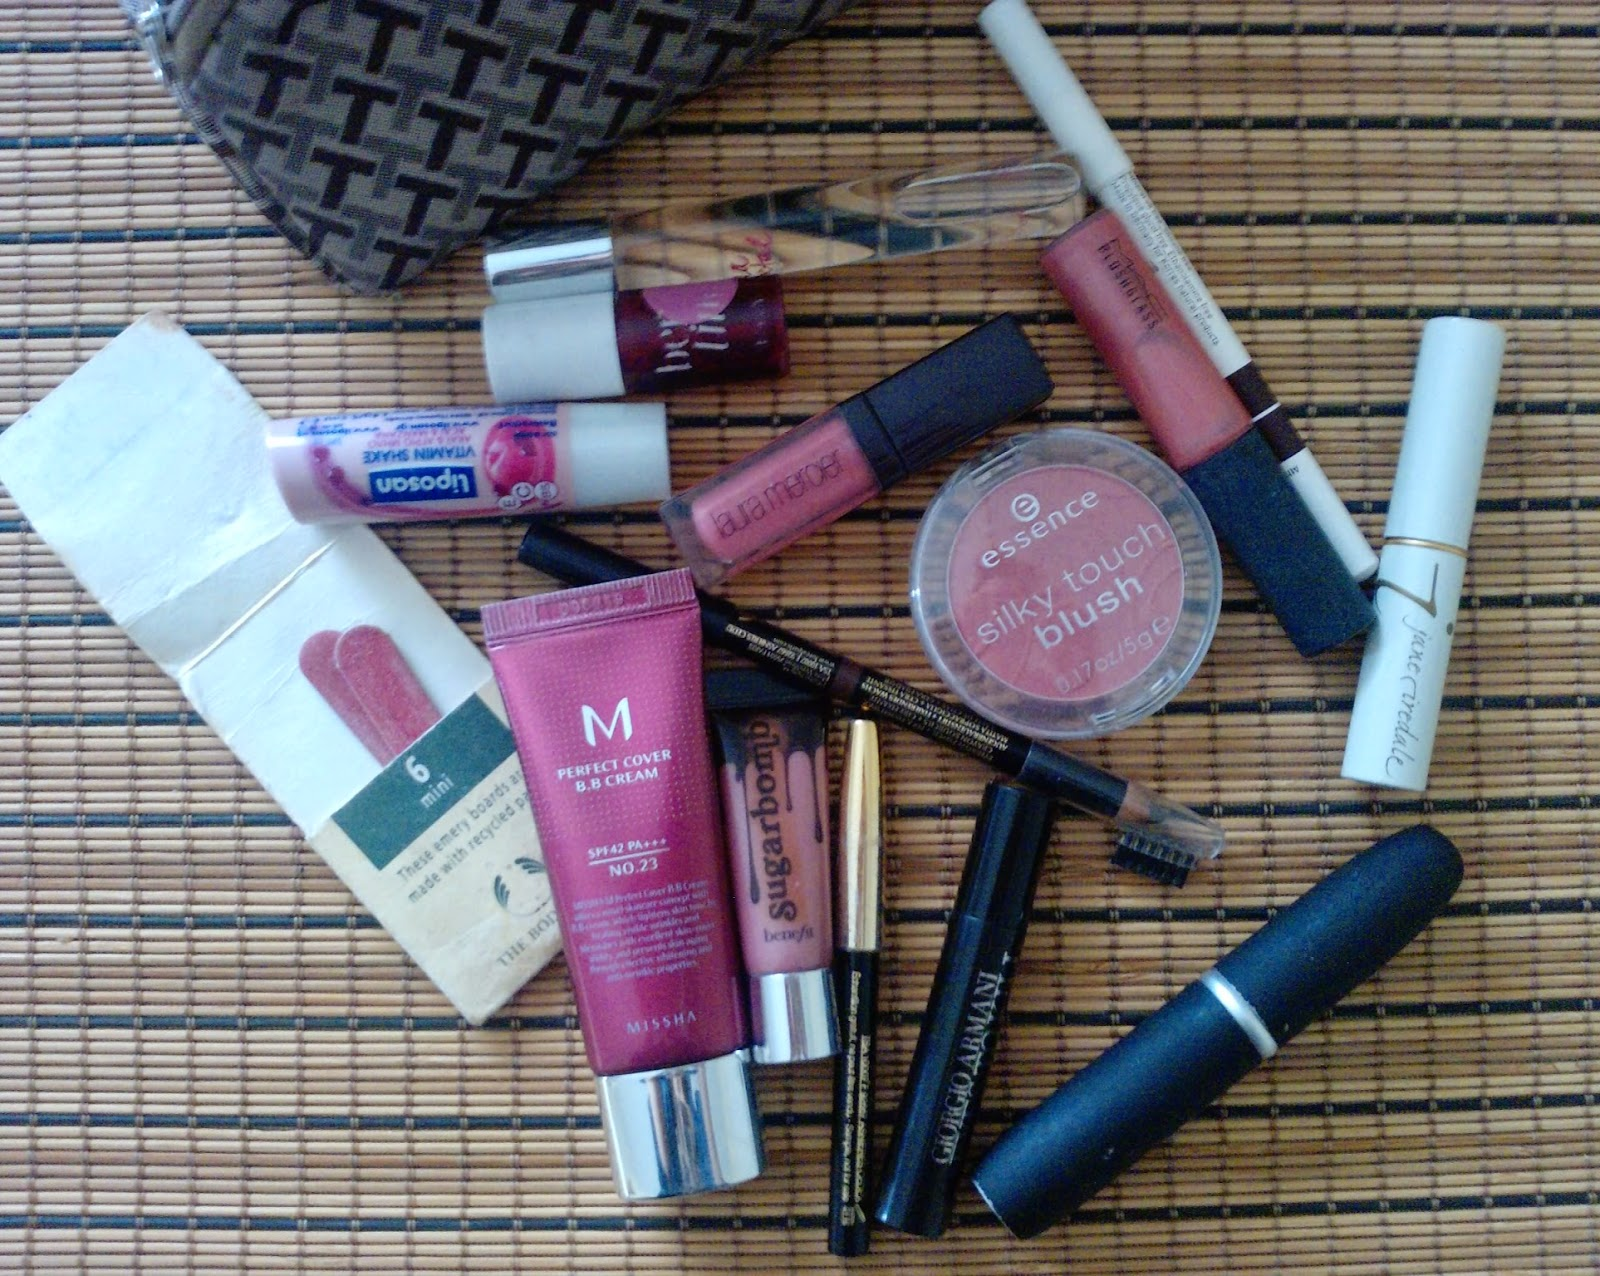 My beauty bag products